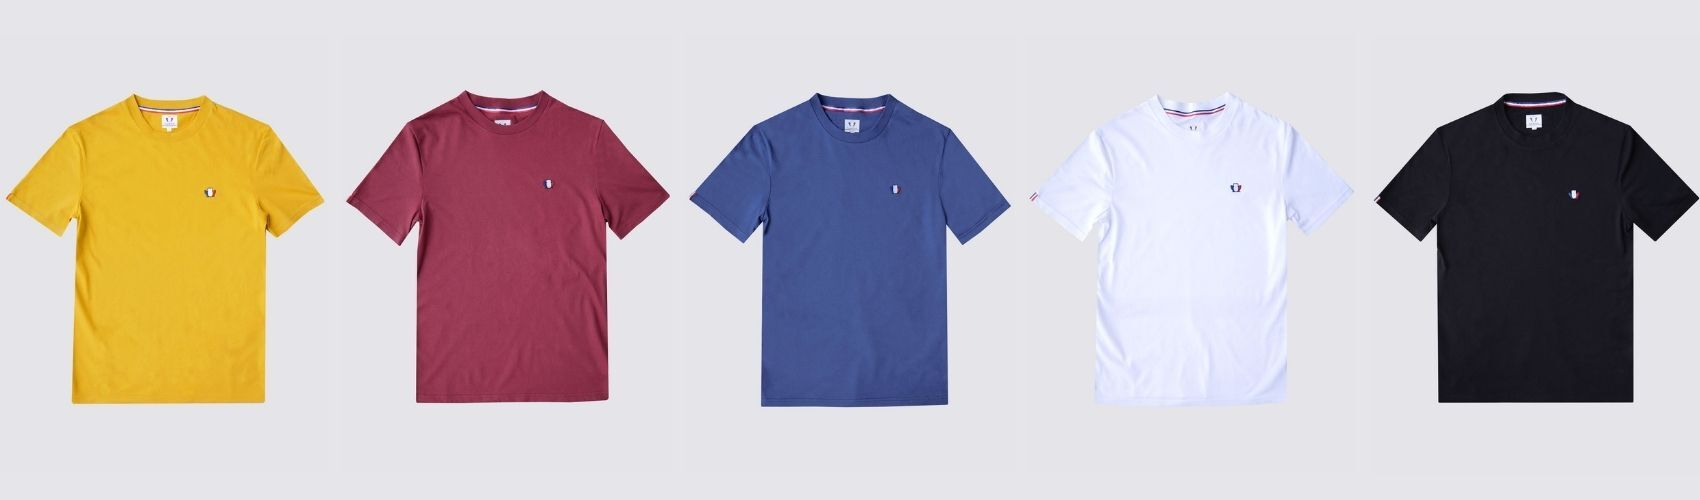 t-shirt-made-in-france-authentique-tranquille-emile